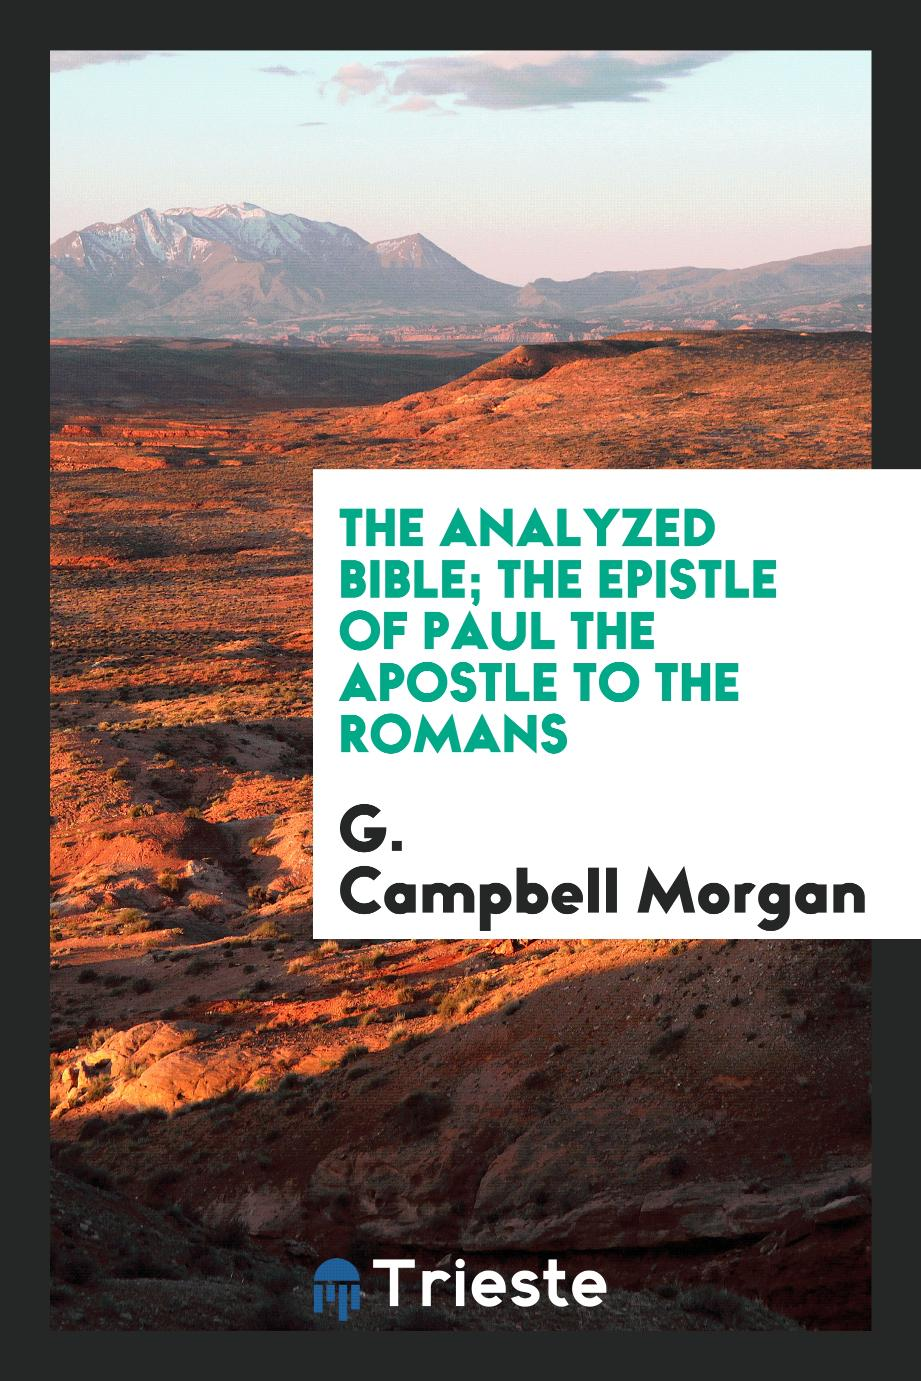 The analyzed Bible; The epistle of Paul the apostle to the romans